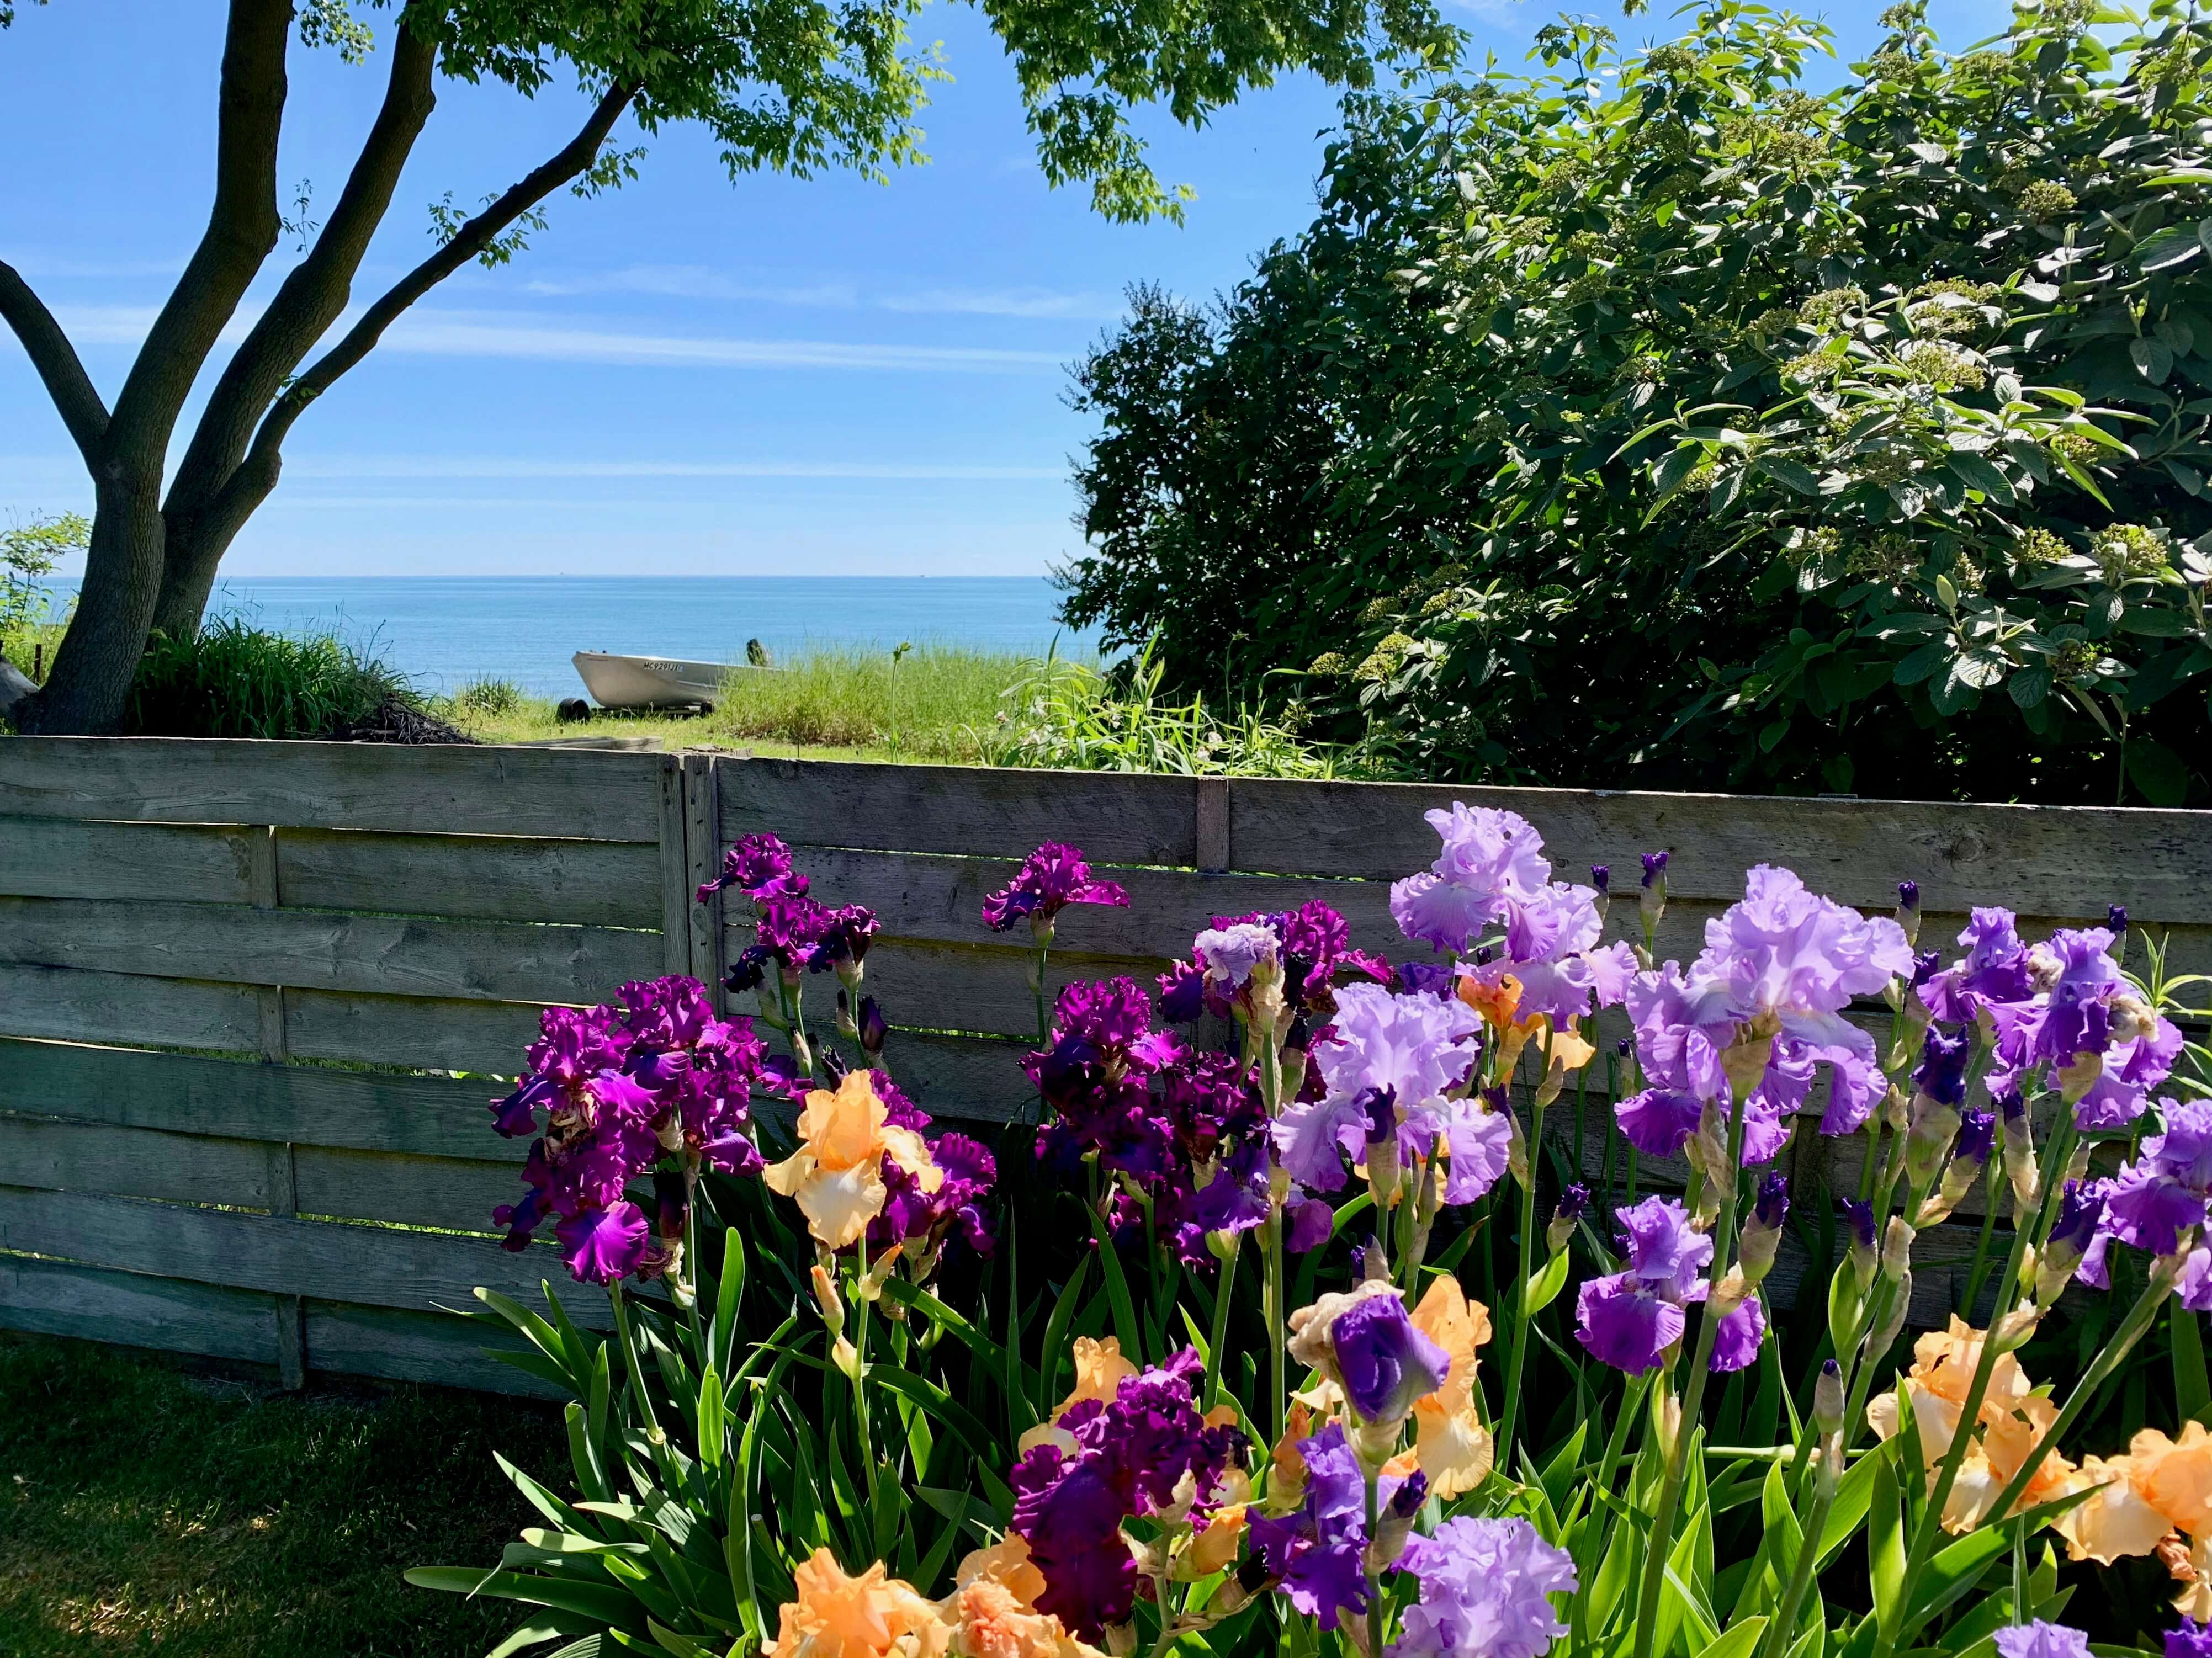 Irises in bloom, a fence and Lake Huron in background